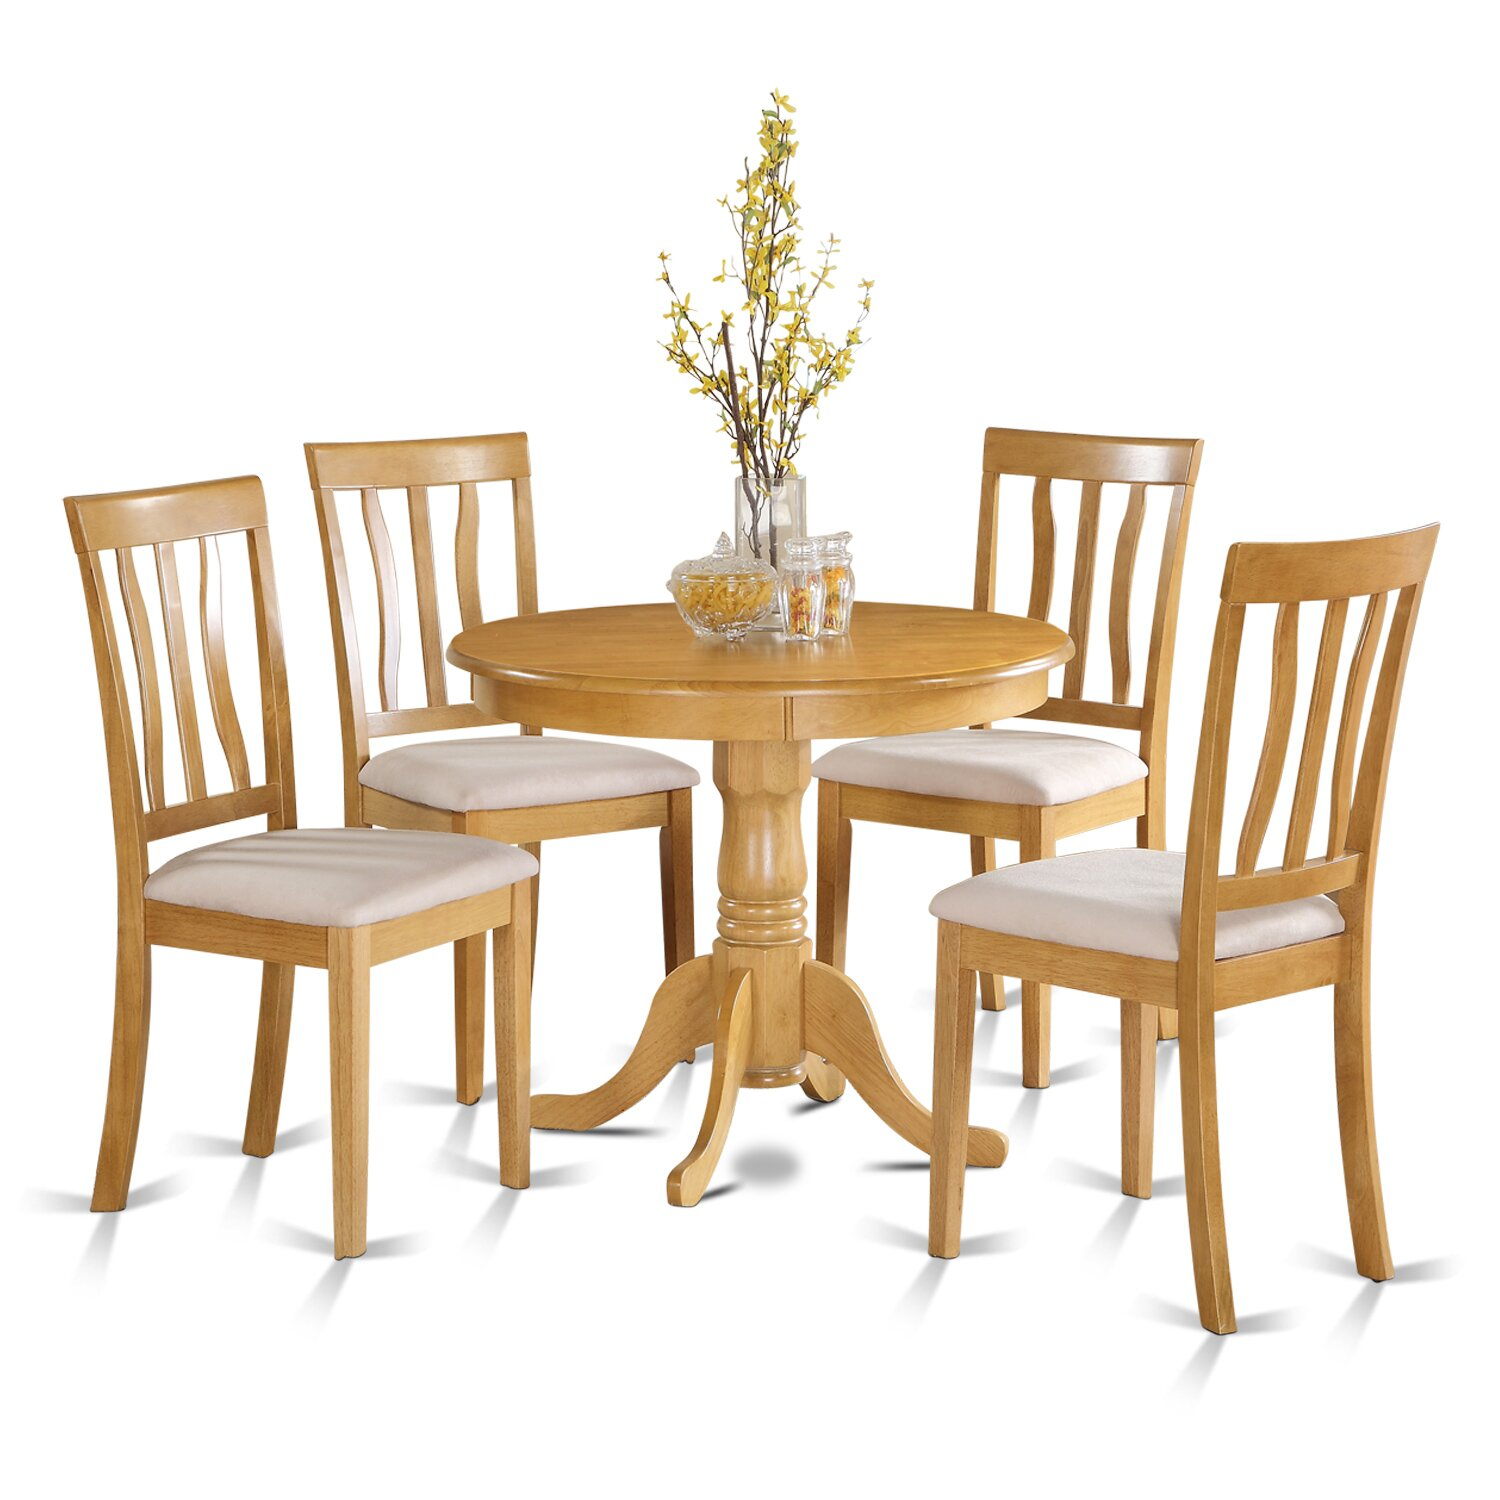 Wooden Importers 5 Piece Dining Set & Reviews